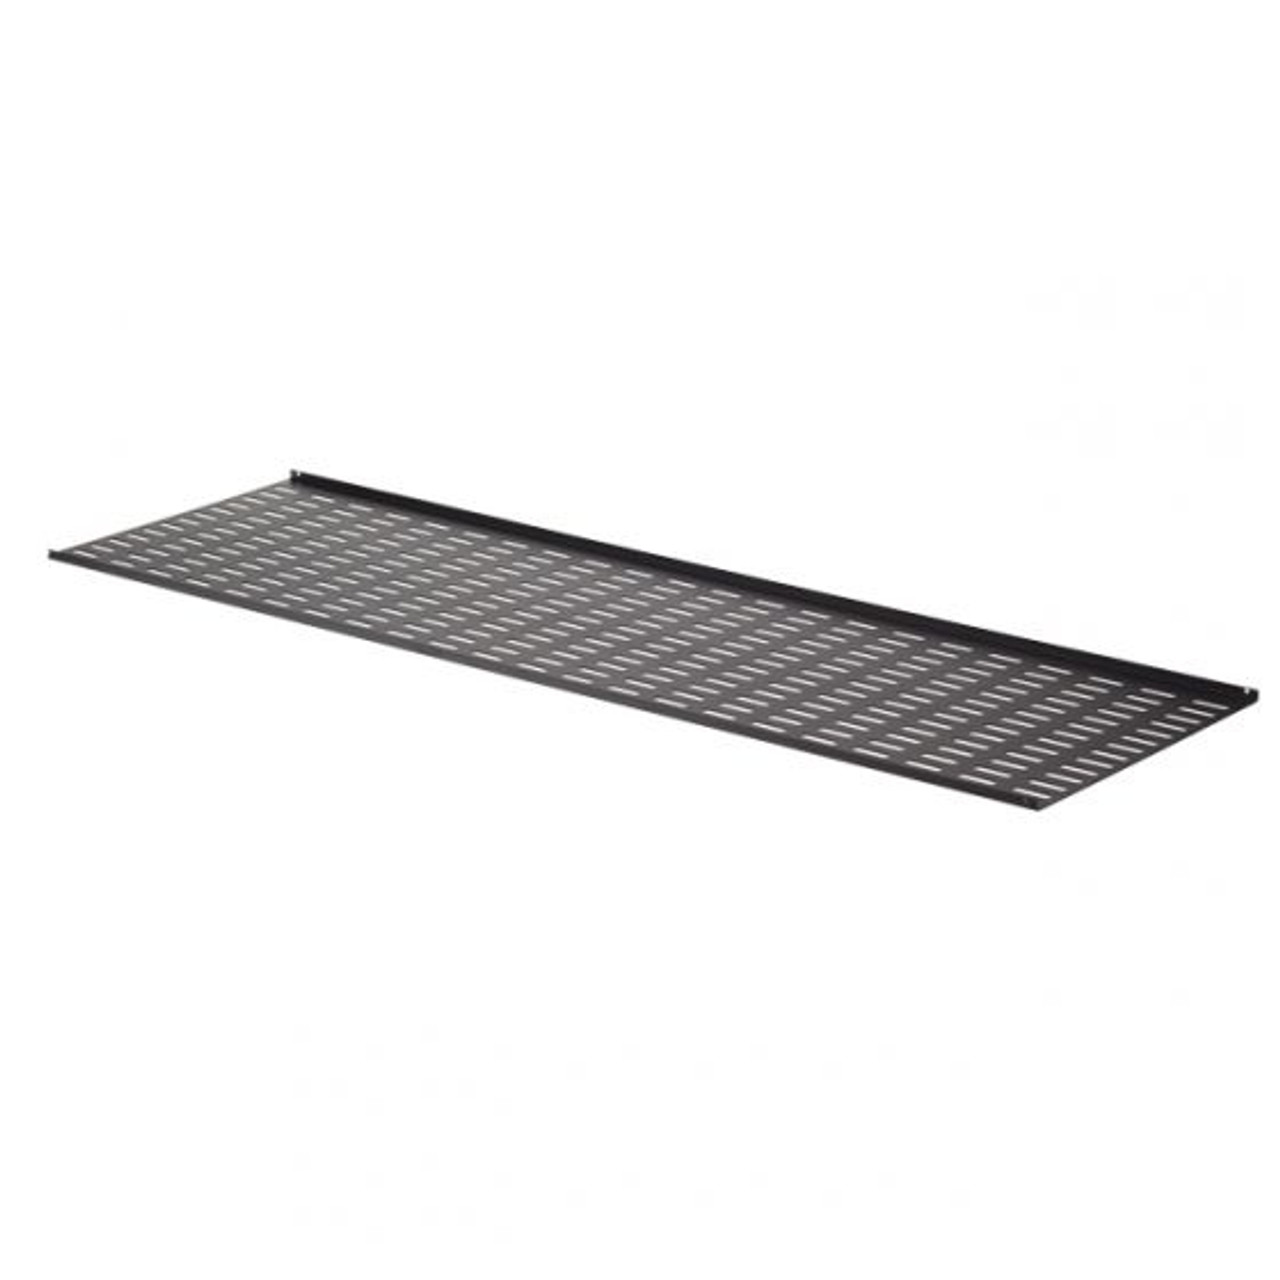 4Cabling 4C 400mm Wide Cable Tray Suitable for 42RU Server Rack